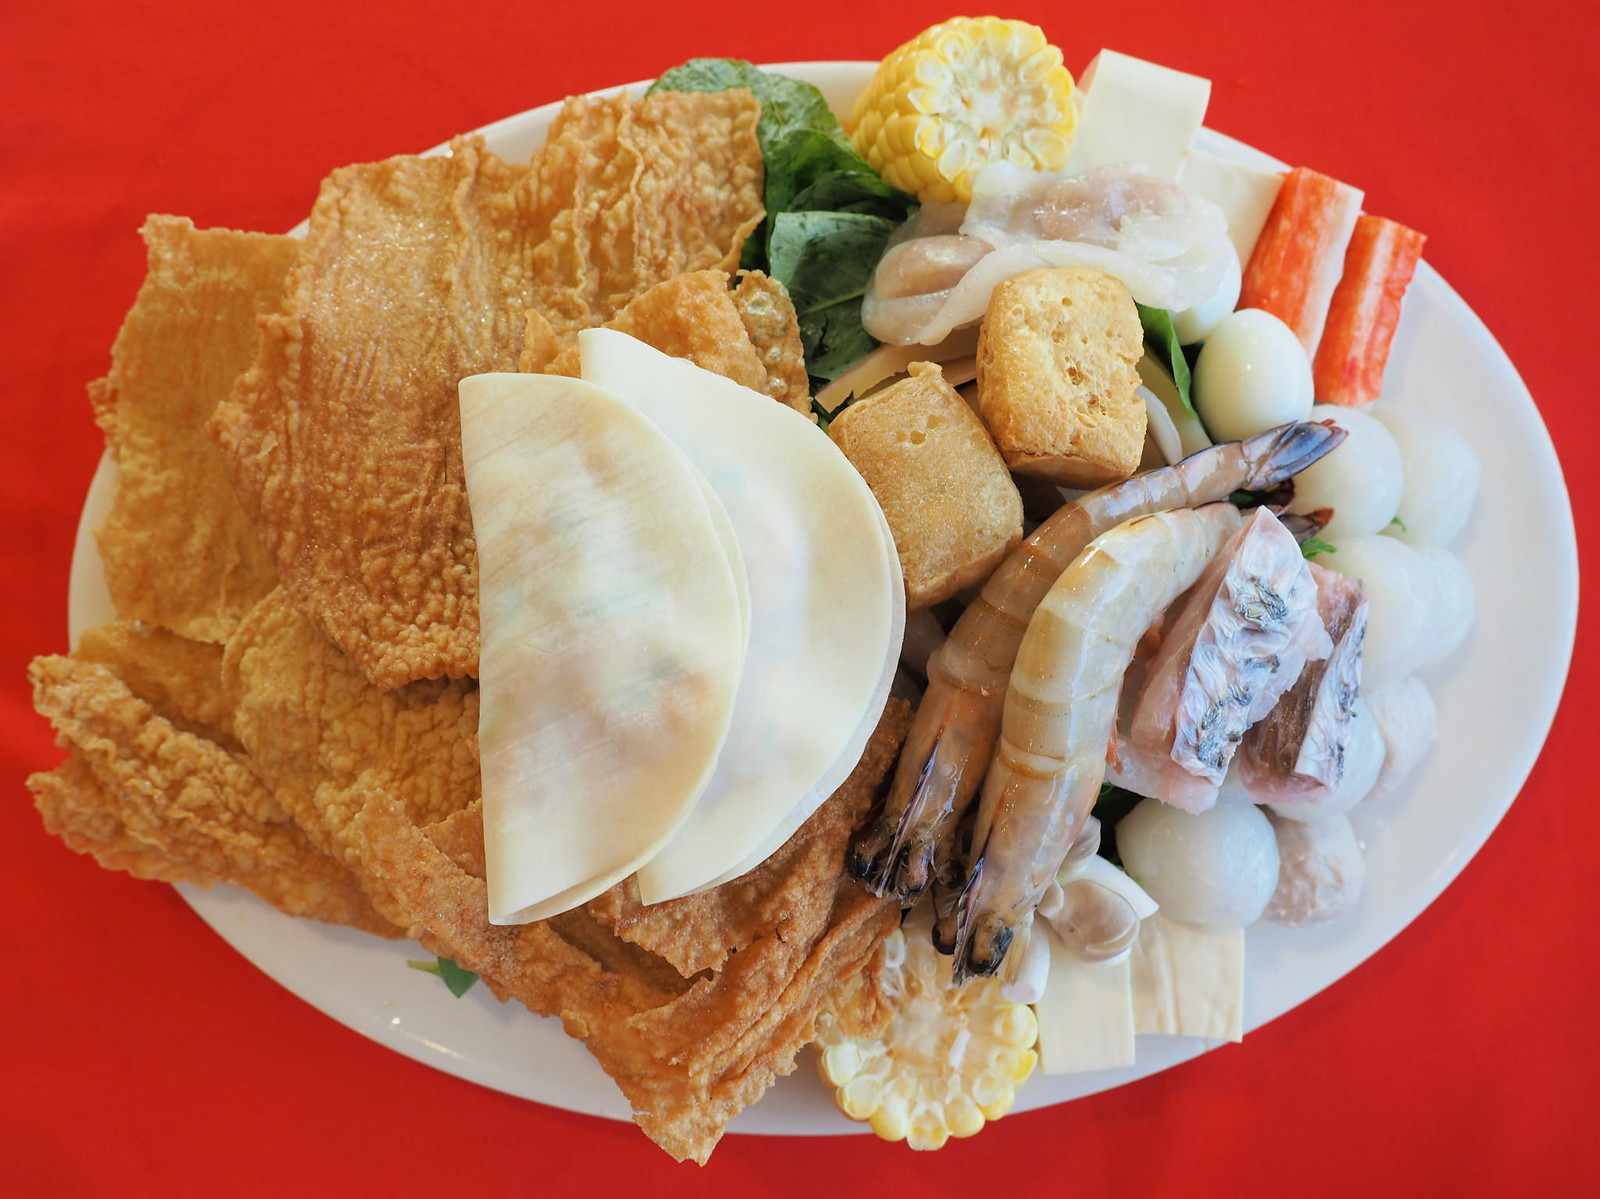 Hometown Steamboat 好家乡火锅世家's Classic Seafood Set for 2 Pax